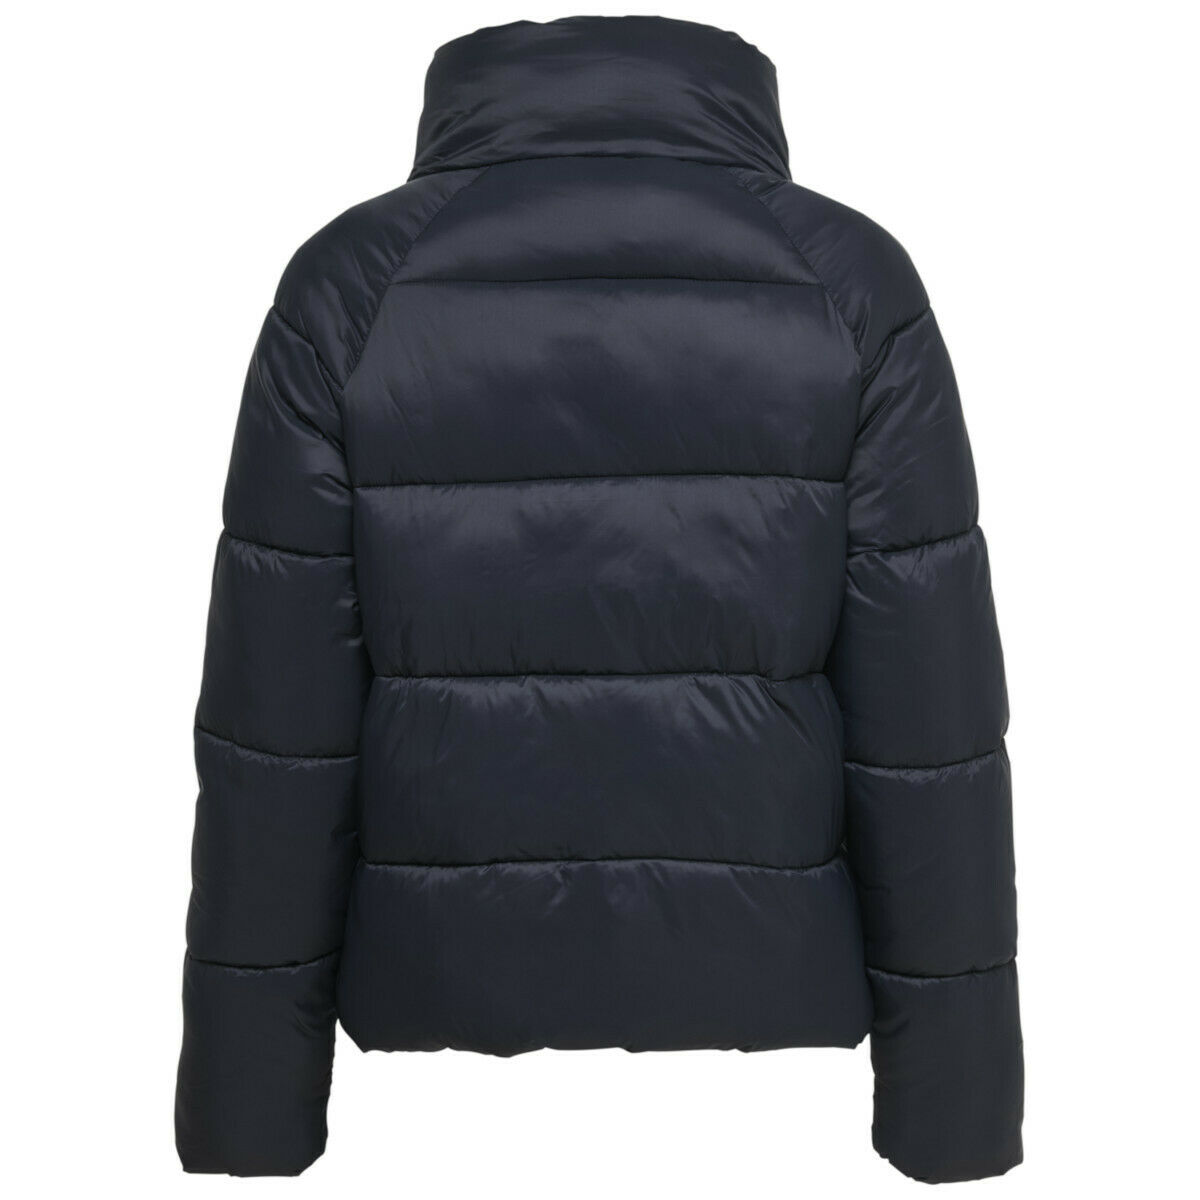 ONLMELANIEQUILTED JACKET ONLY | Jacket | 15208403BLACK